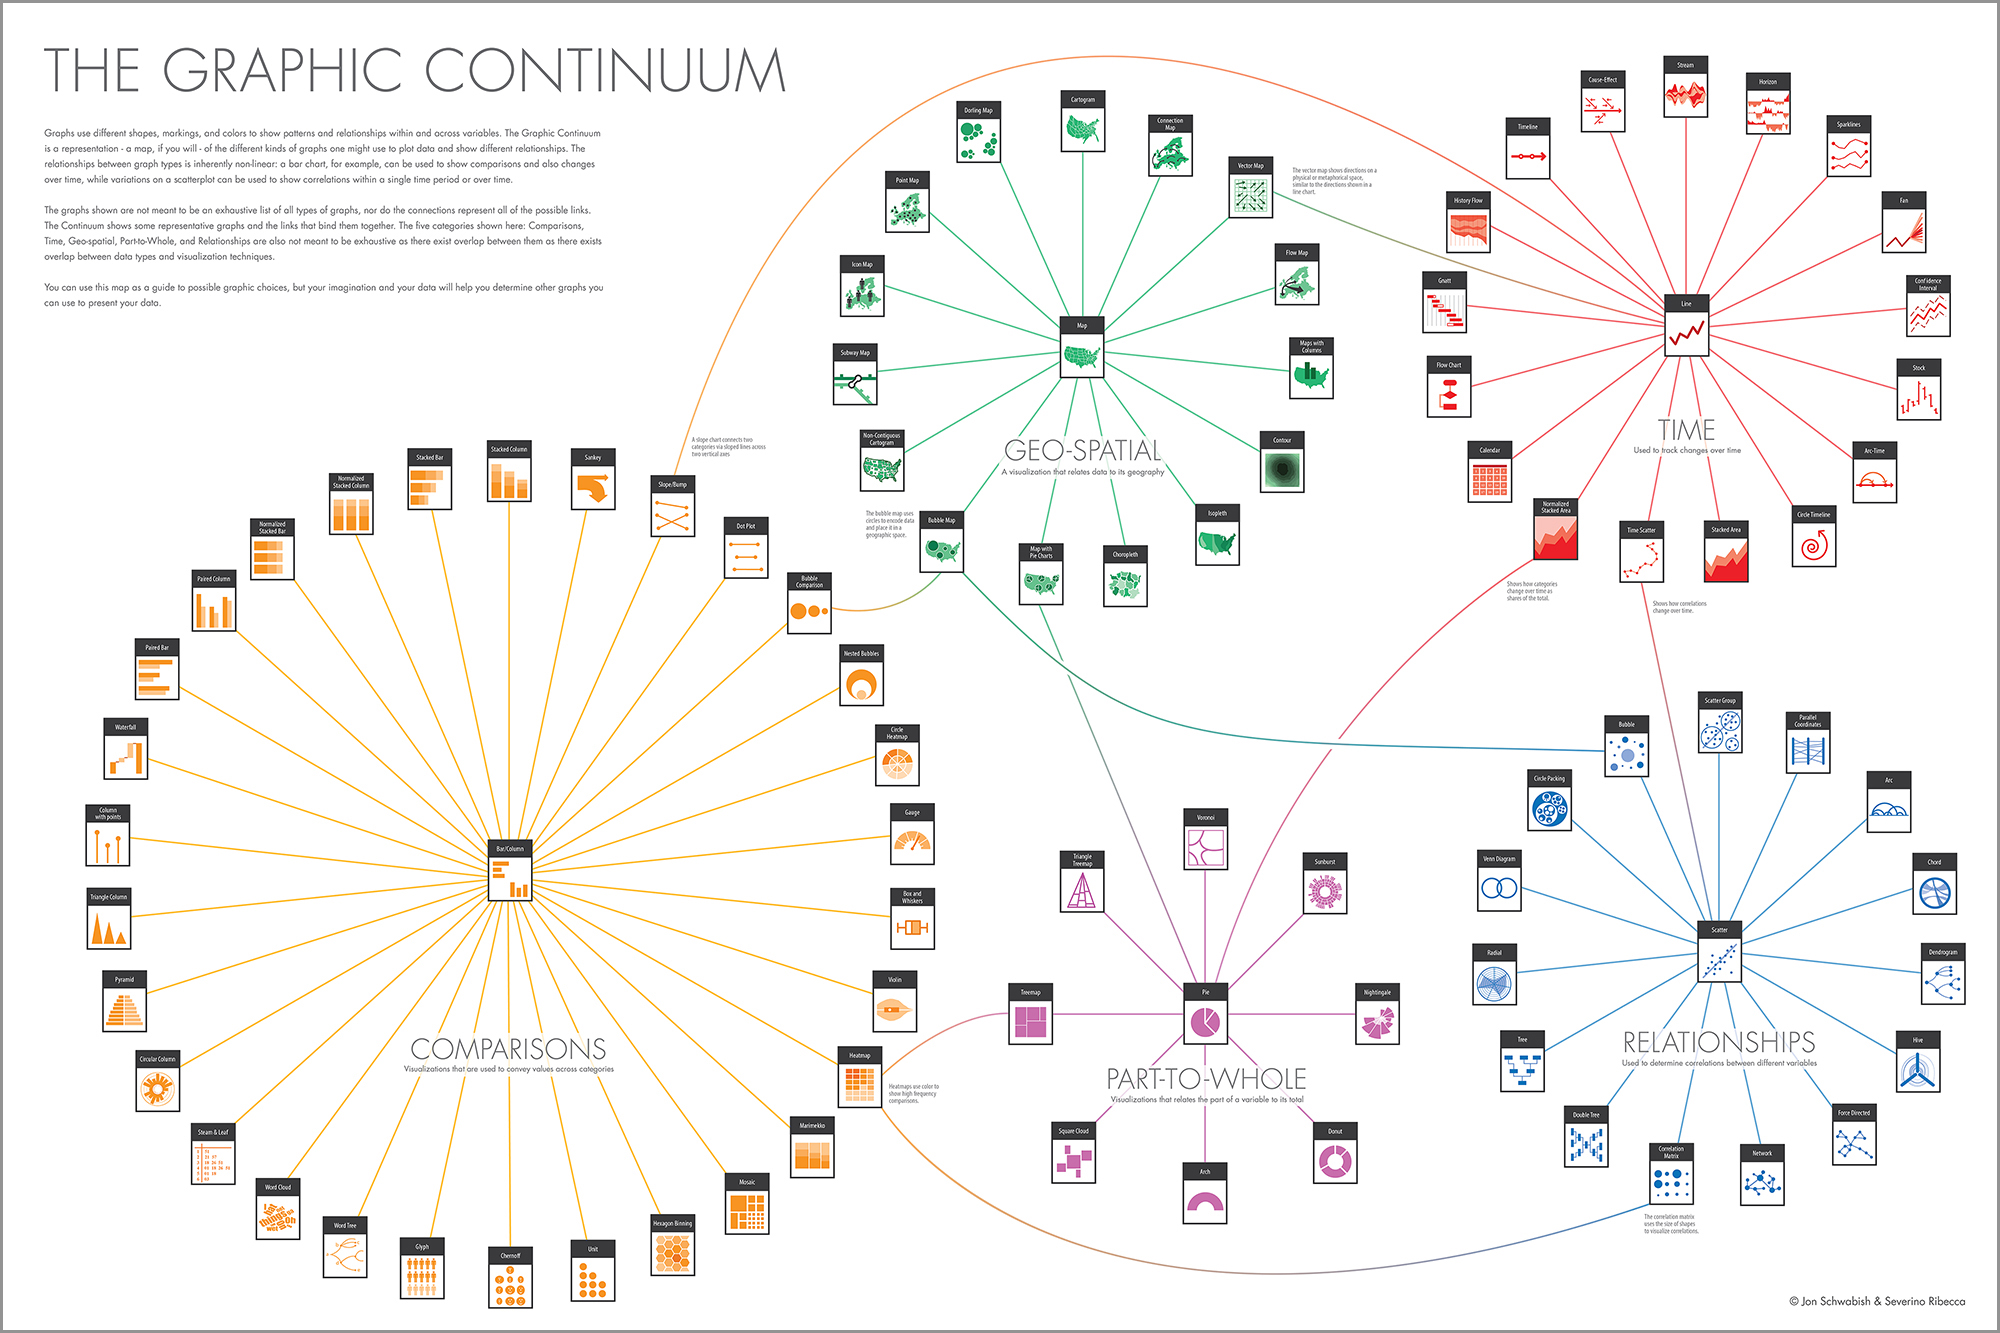 Chart Systematik - The Graphic Continuum